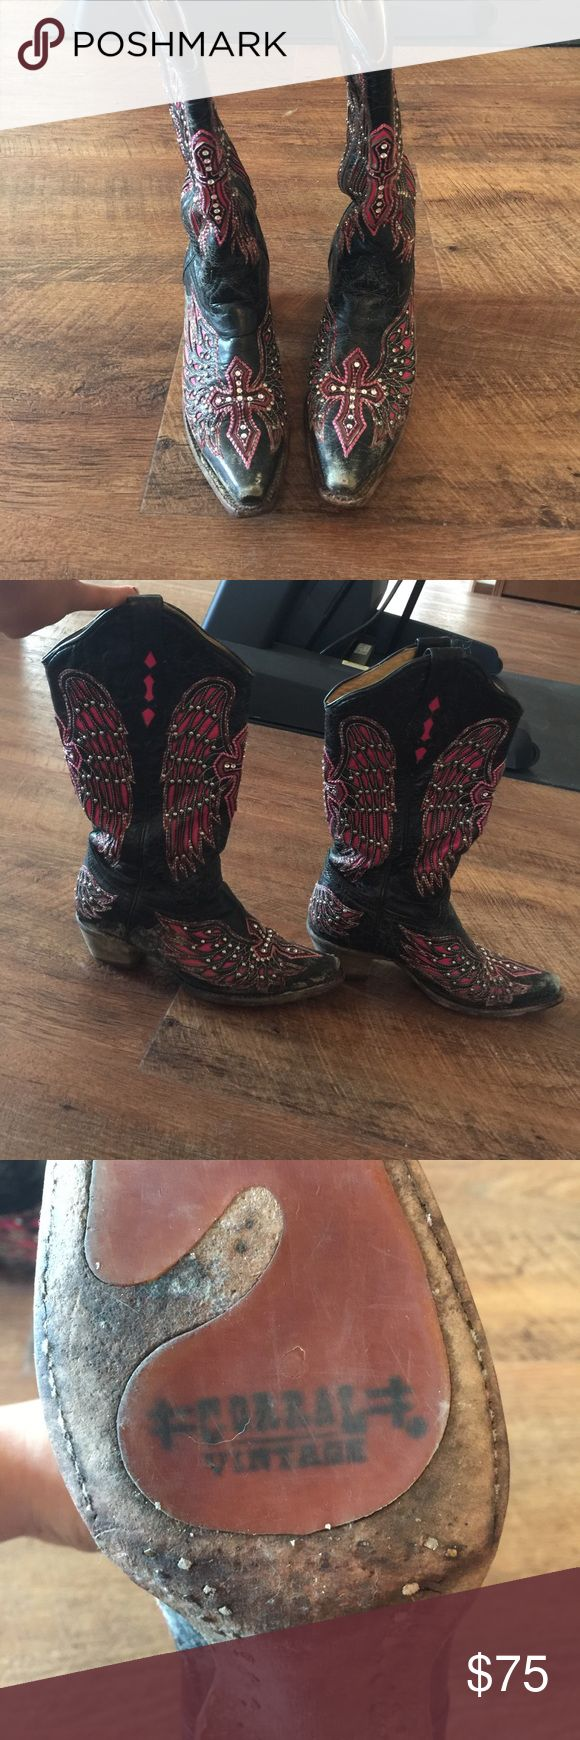 Corral vintage boots Black and pink corral boots. Worn, seen in pictures. Make an offer! Corral Vintage Shoes